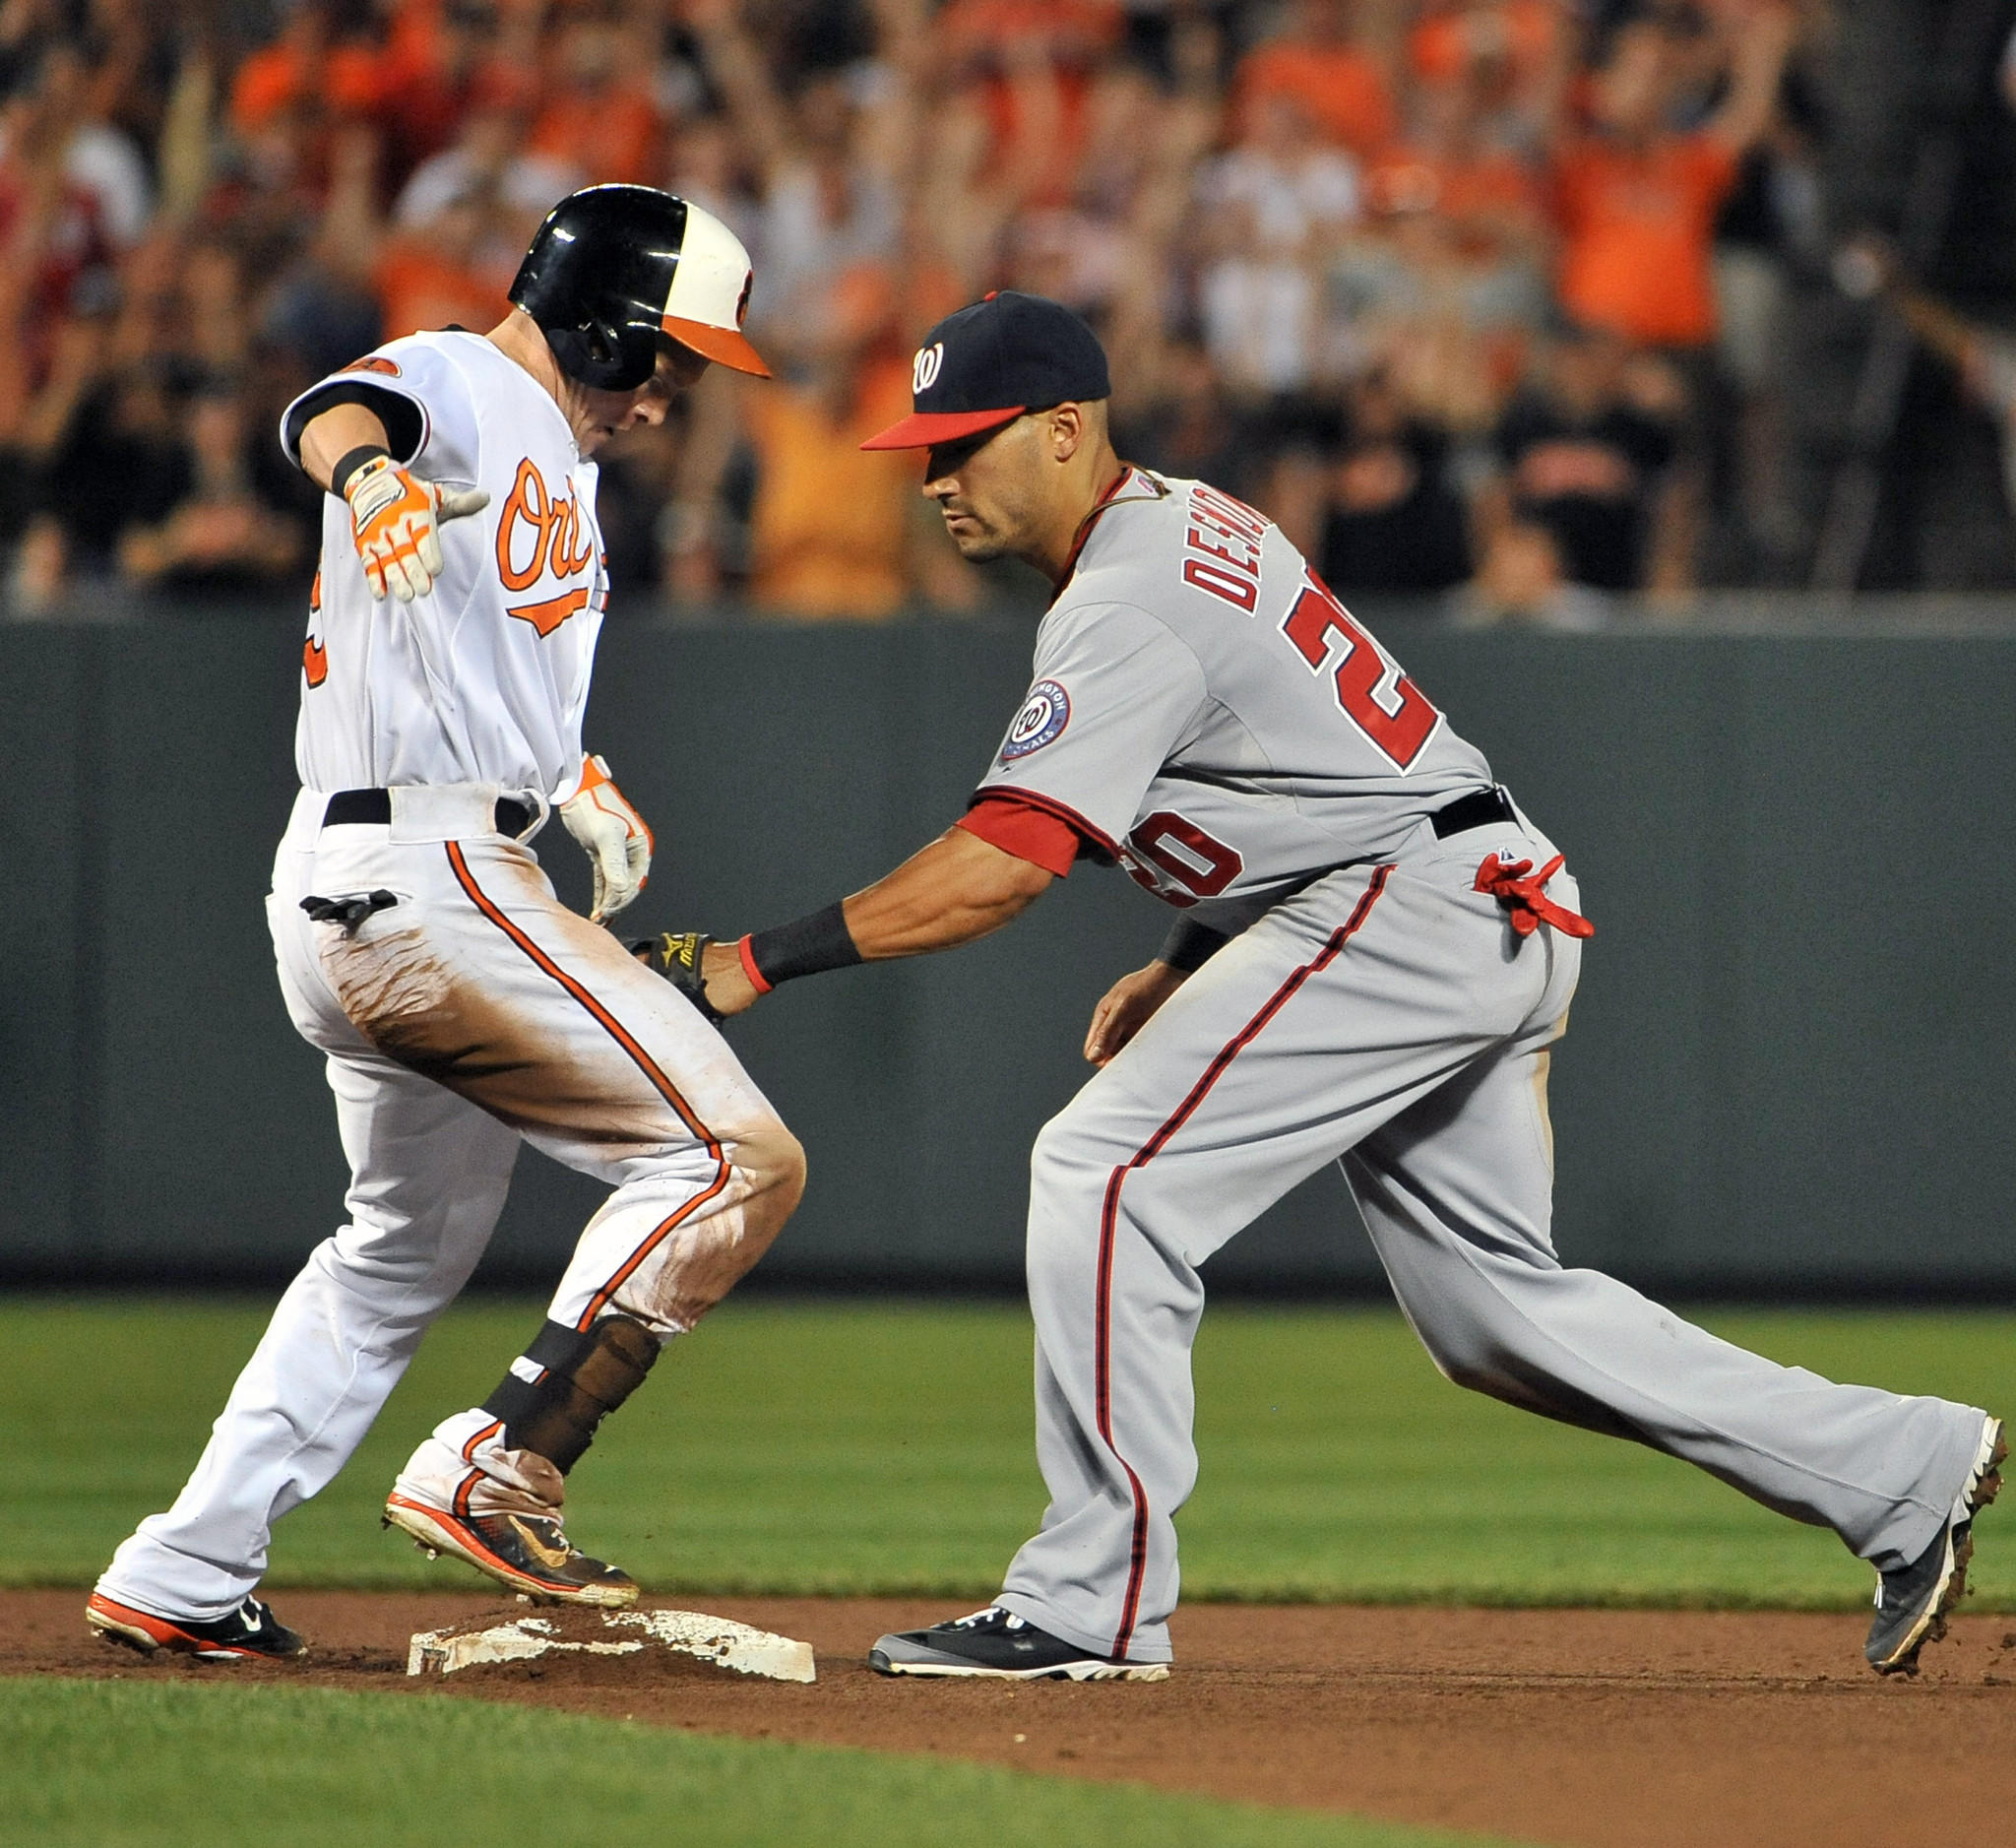 The Orioles and Nationals will each have their own broadcast when they meet again in July.